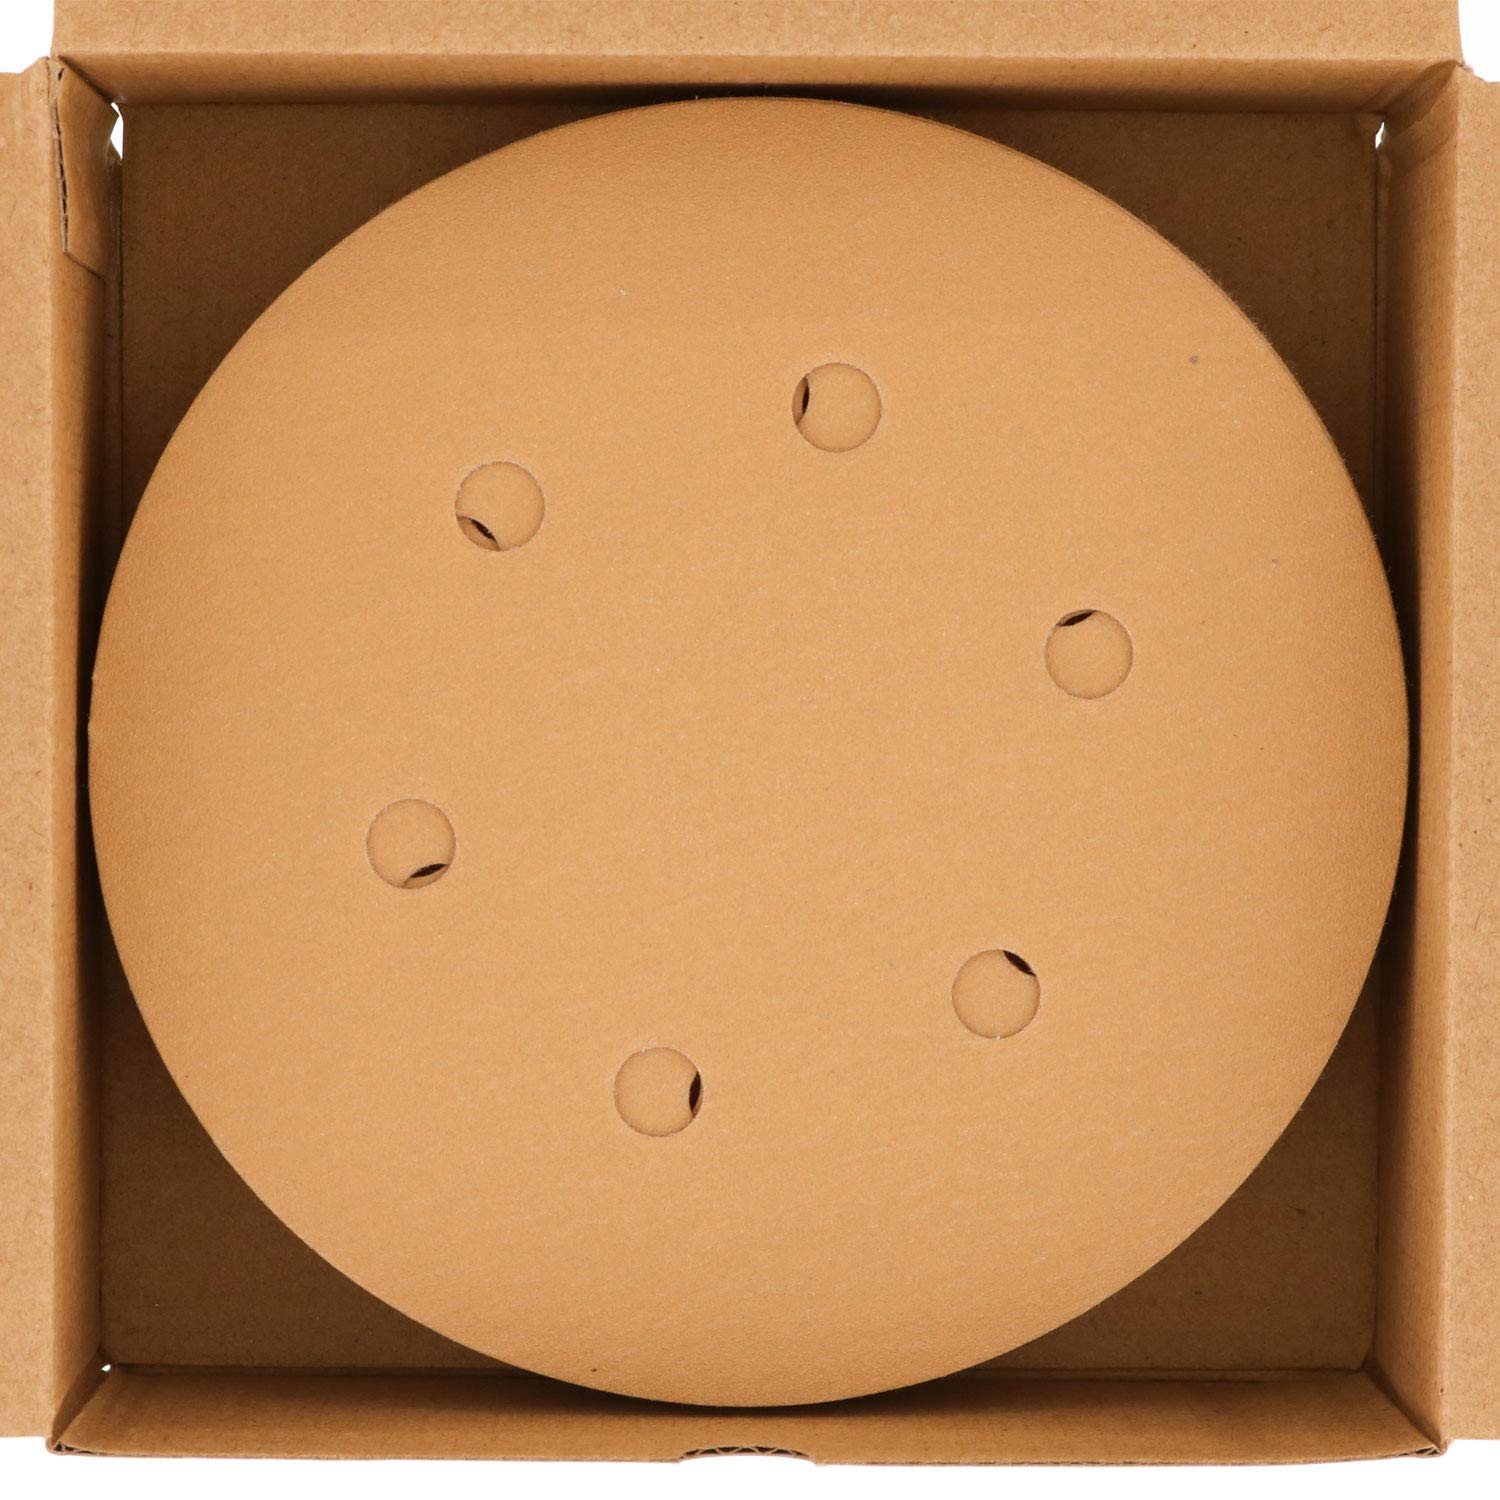 Box of 50 Sandpaper Finishing Discs for Automotive and Woodworking Dura-Gold Premium 120 Grit 6 Gold Hook /& Loop 6-Hole Sanding Discs for DA Sanders